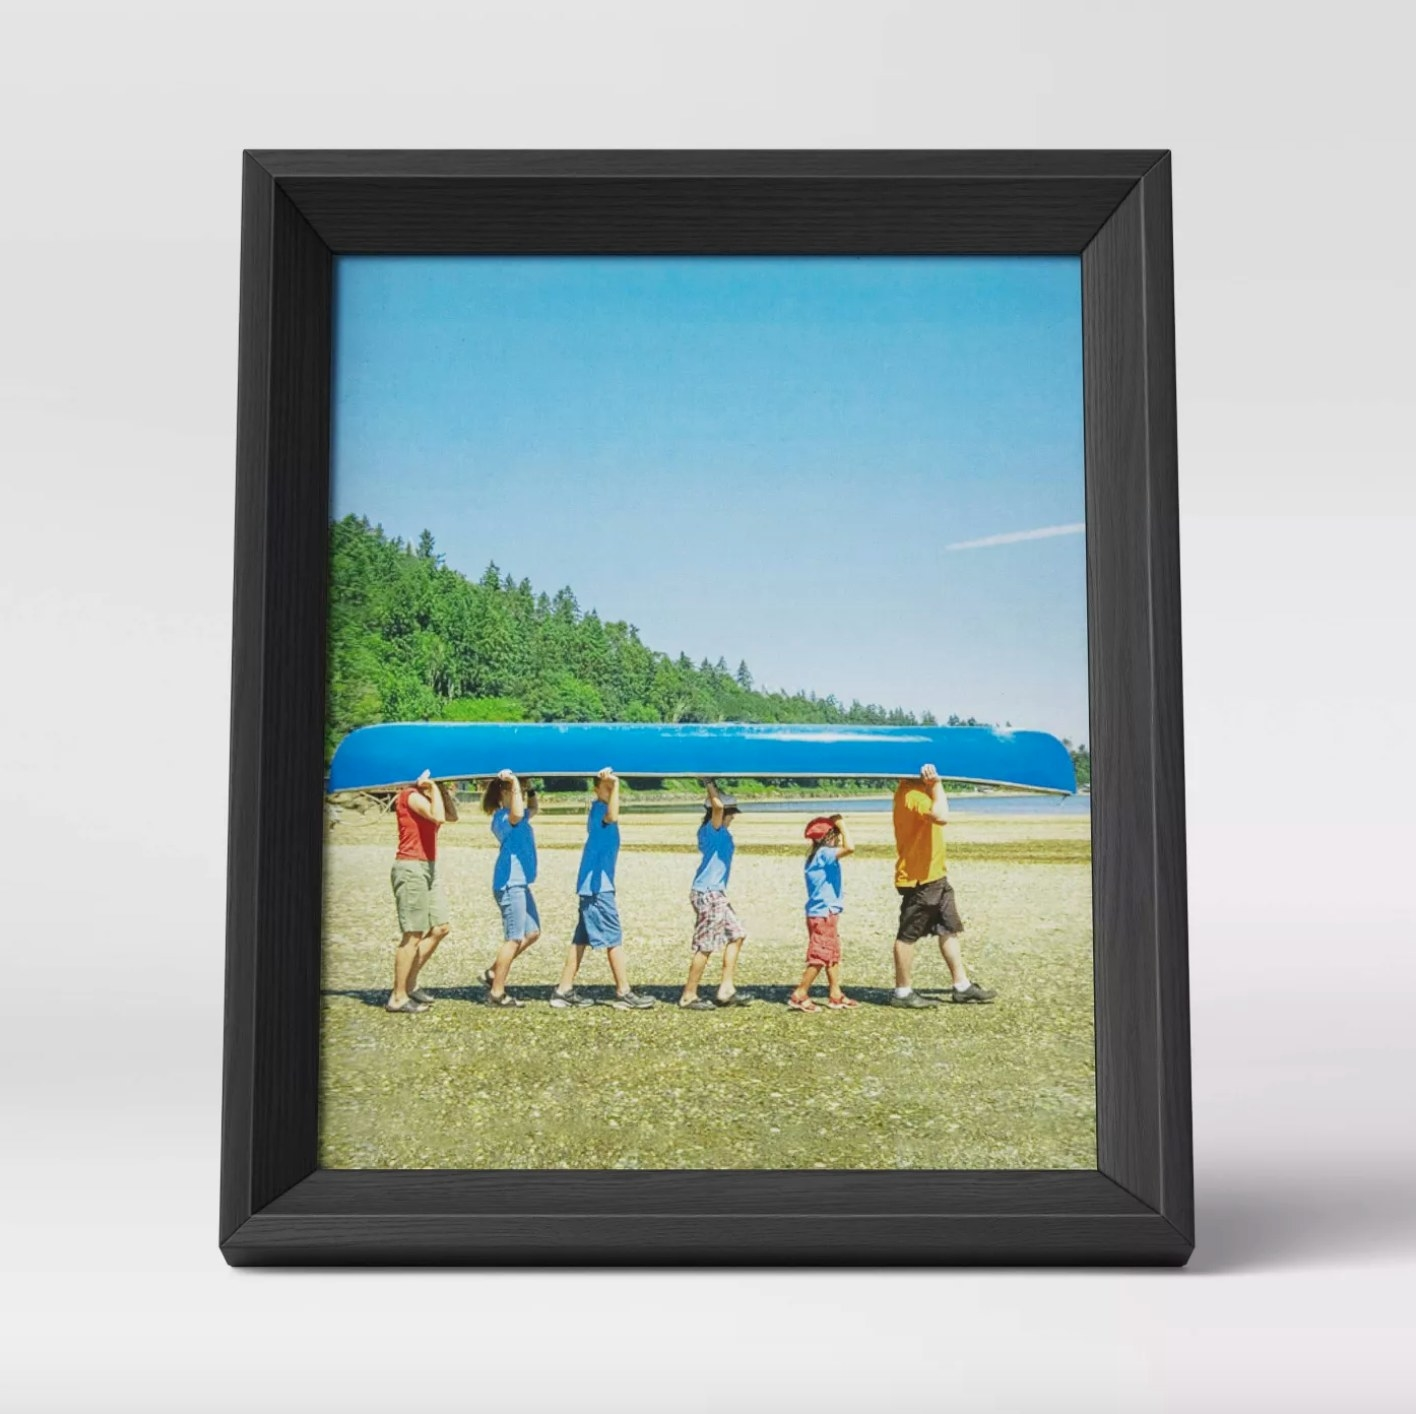 The wedge picture frame in black